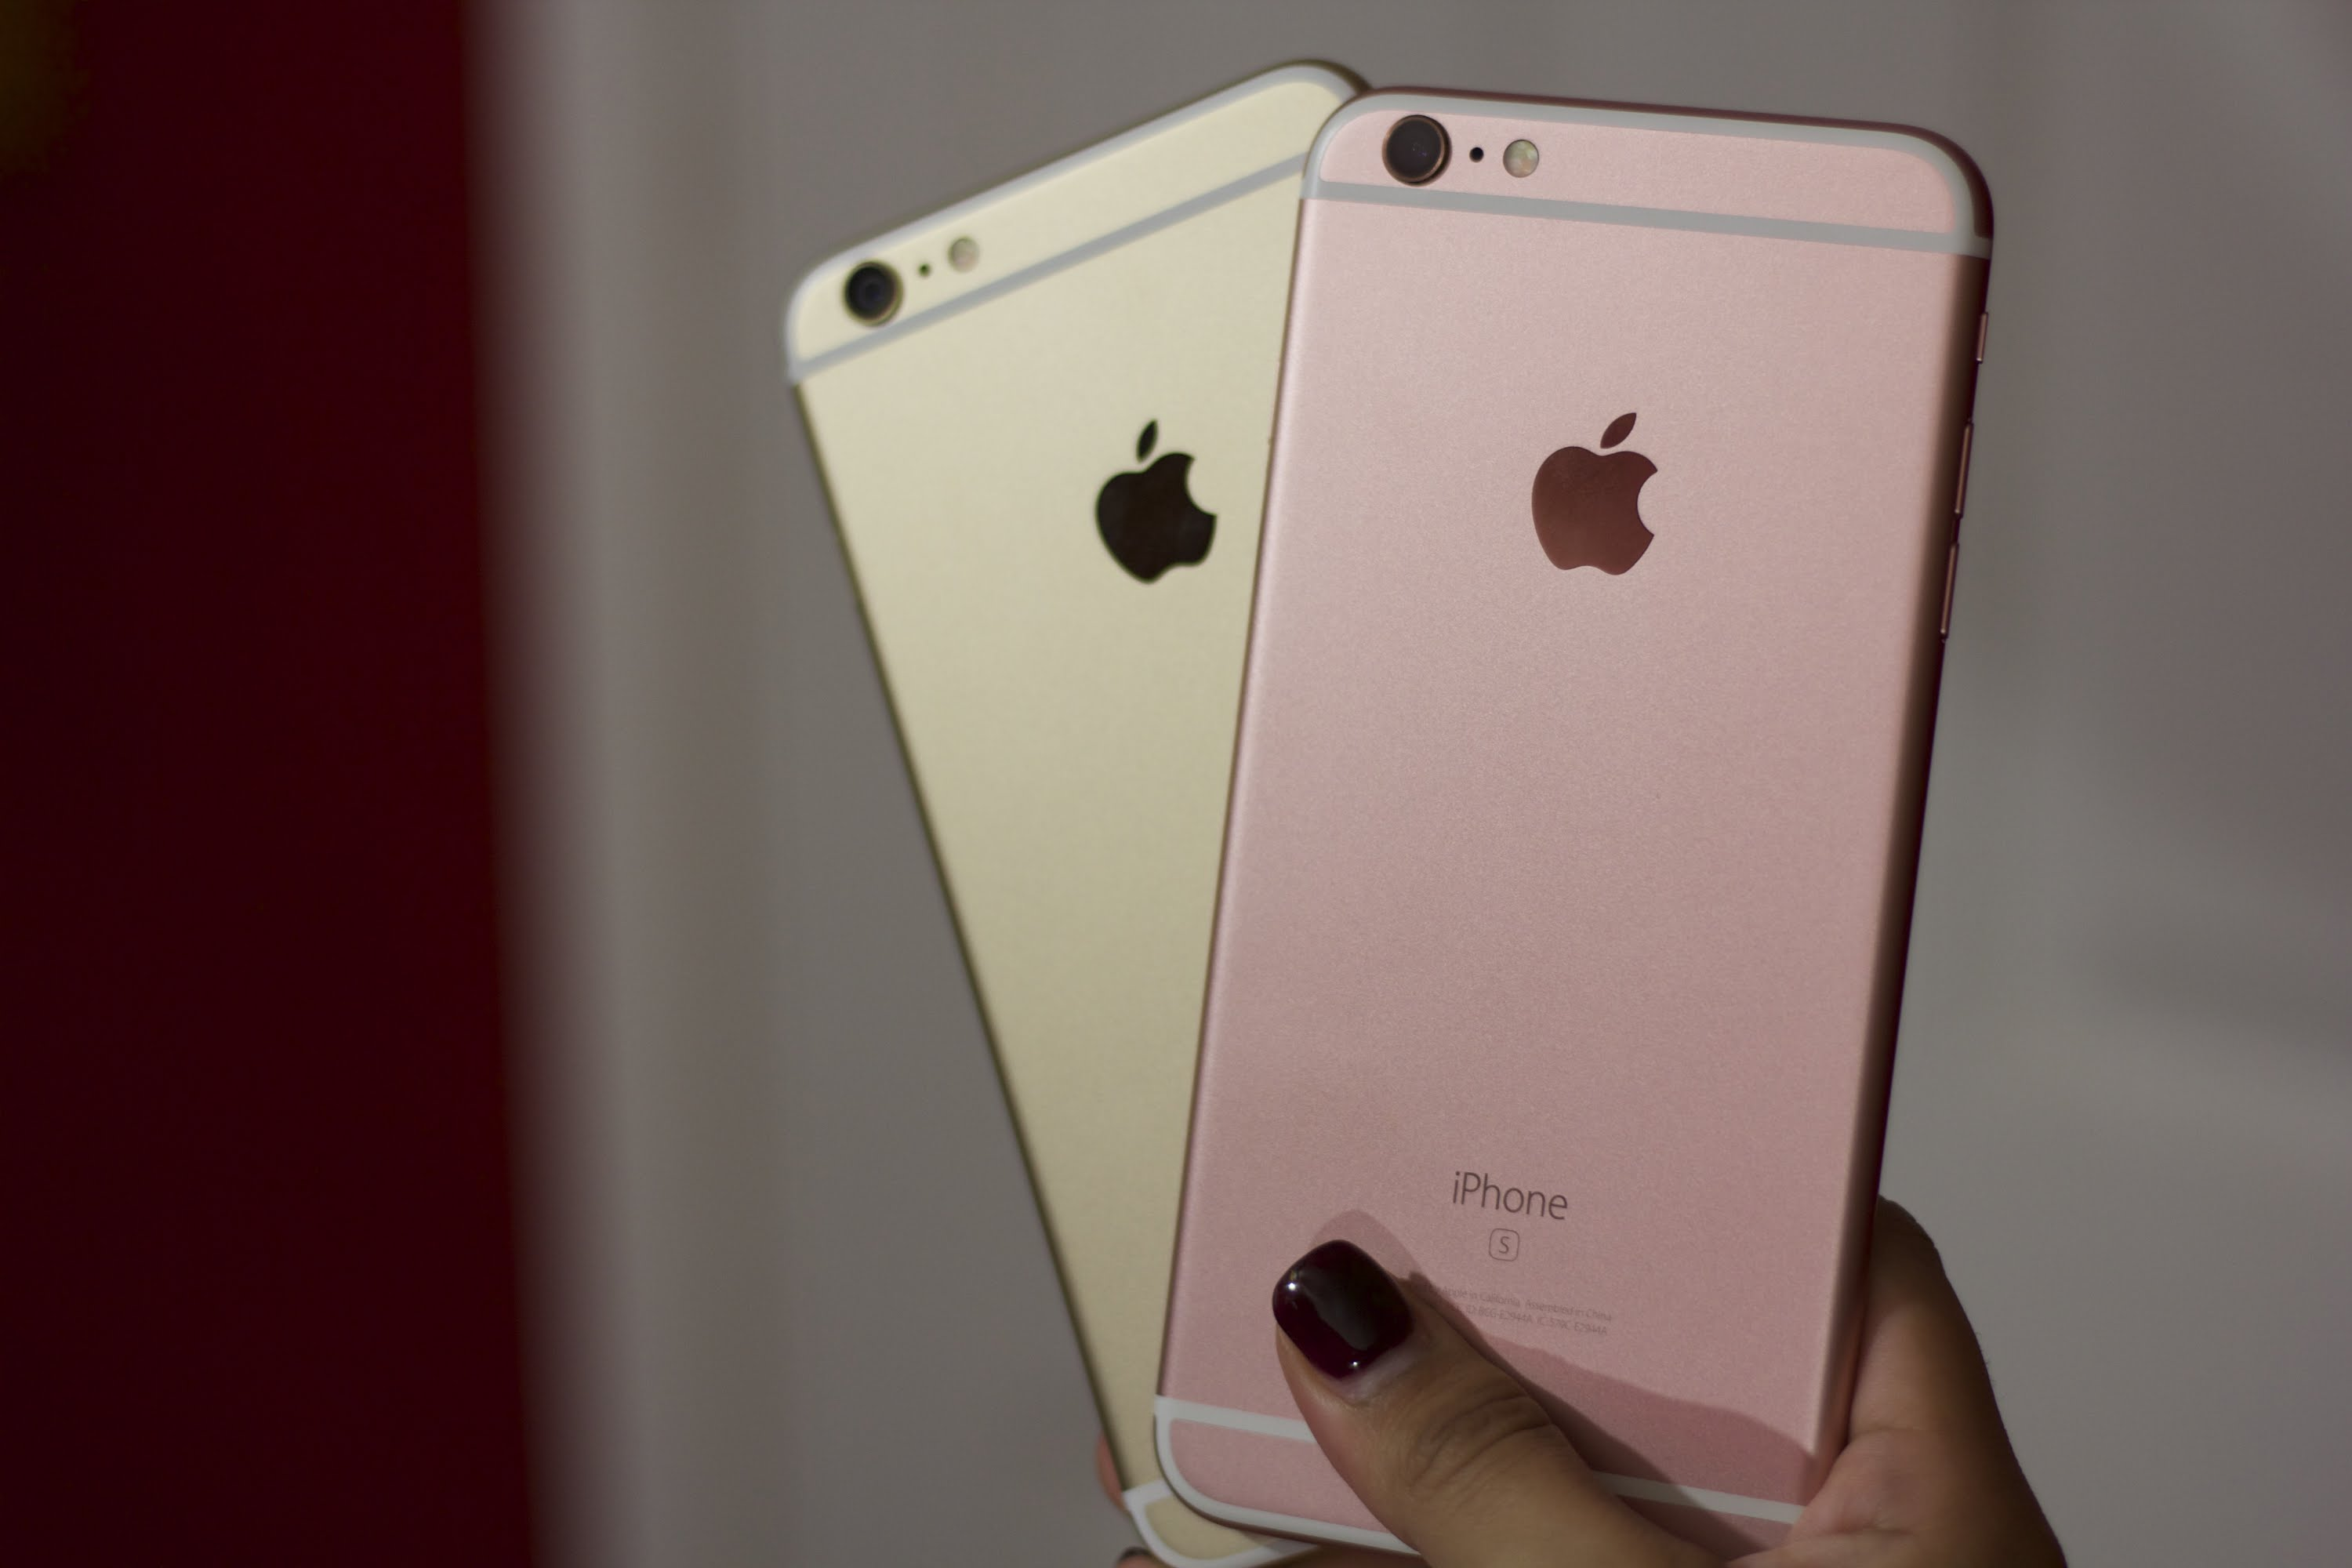 apple iphone se 39 s price specifications leaked here 39 s what we know. Black Bedroom Furniture Sets. Home Design Ideas